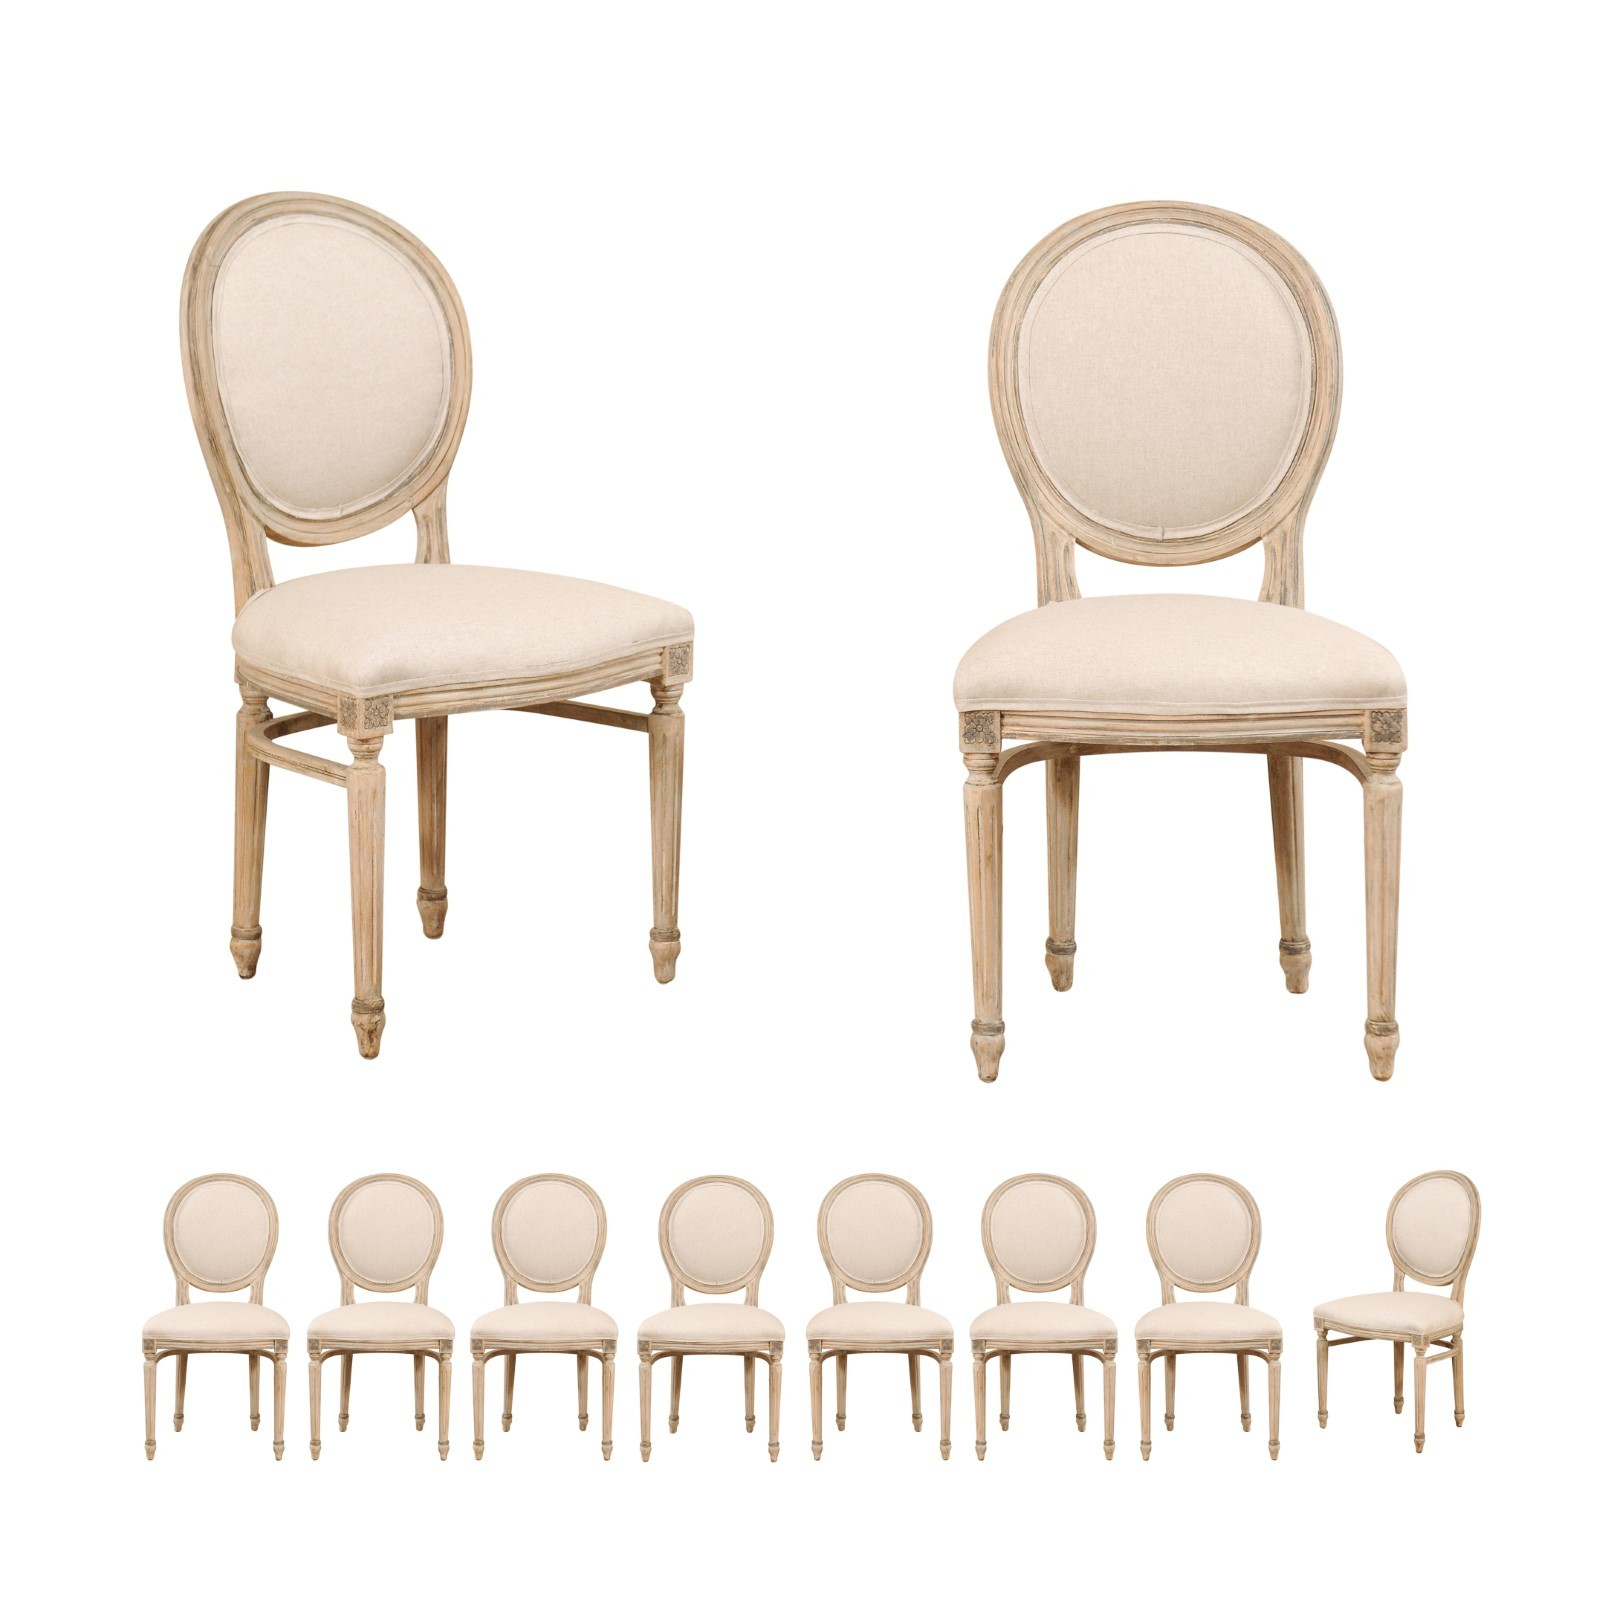 Set of 10 Louis XVI Style Side Chairs